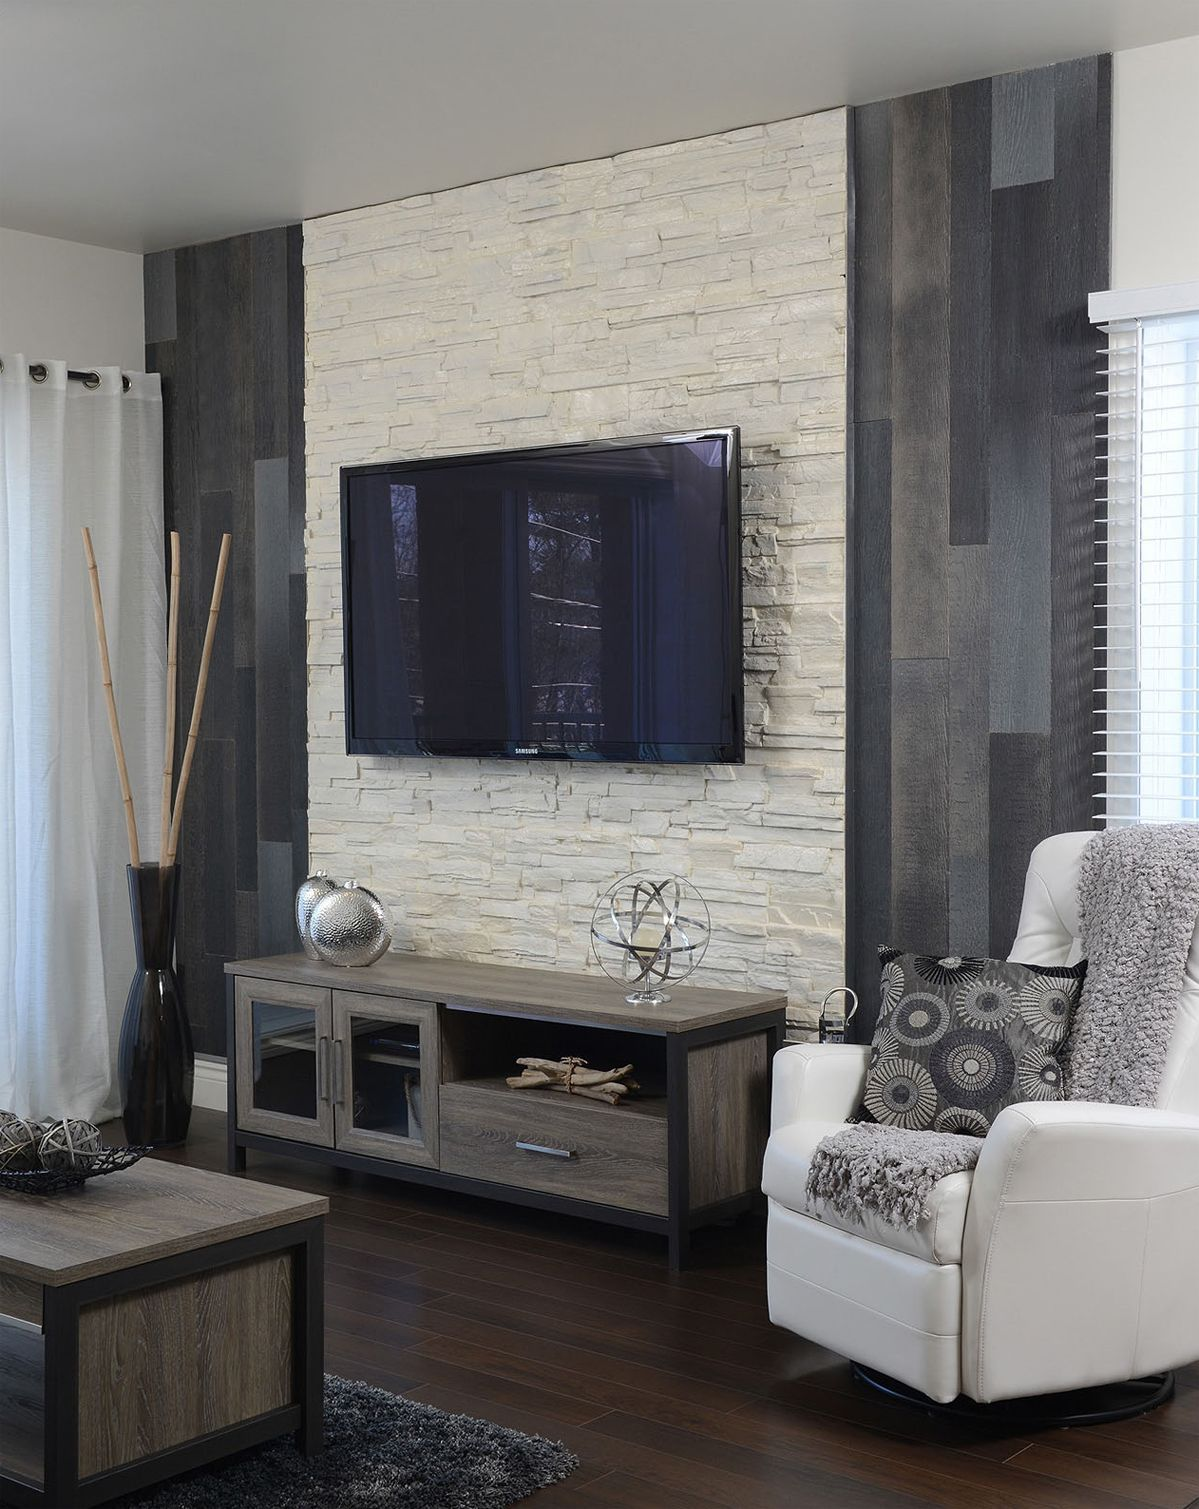 Living Room Wall: Gray Wood + Cream-colored Stone = Delicious.